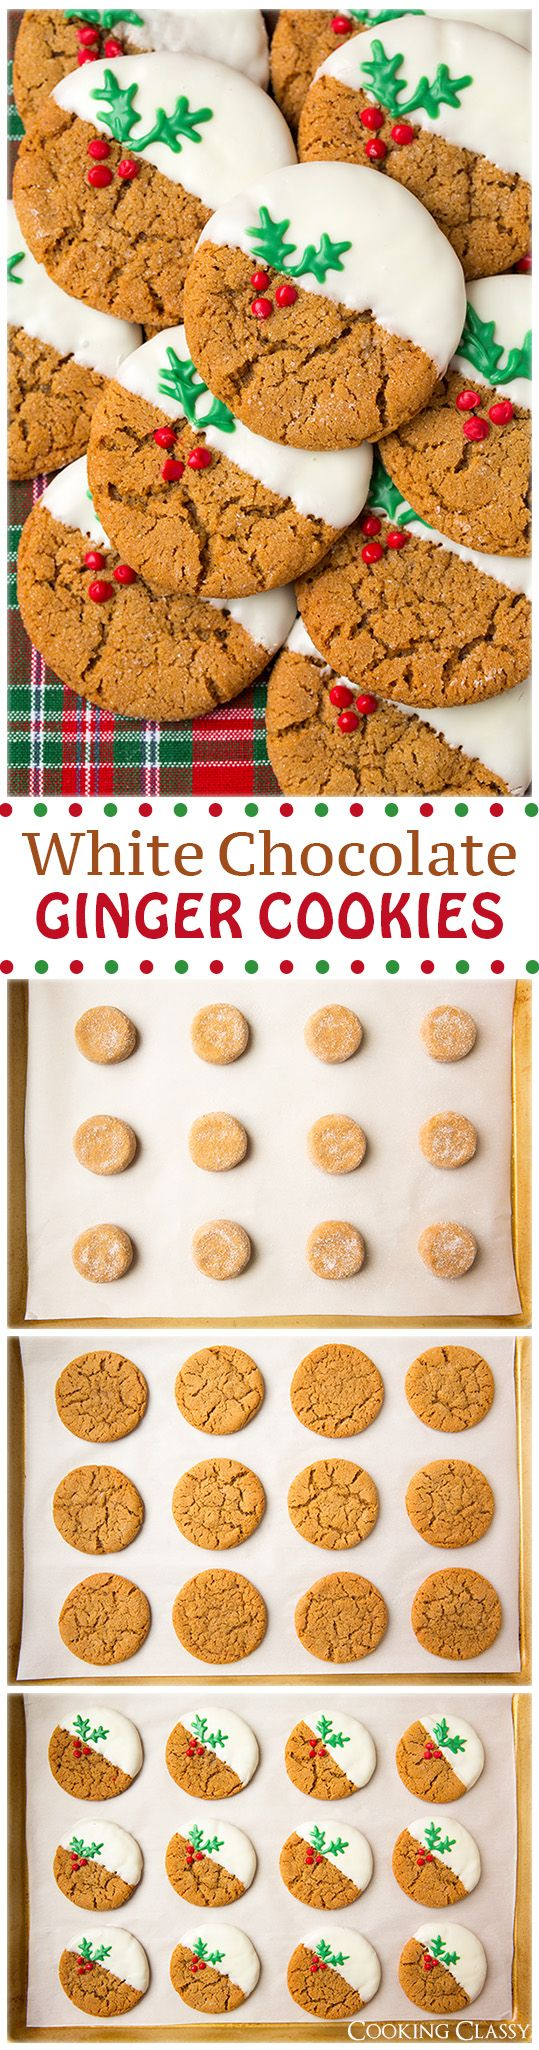 White Chocolate Dipped Ginger Cookies (soft and chewy) - these cookies are SO GOOD!! So much gingery flavor and the white chocolate is the perfect compliment.